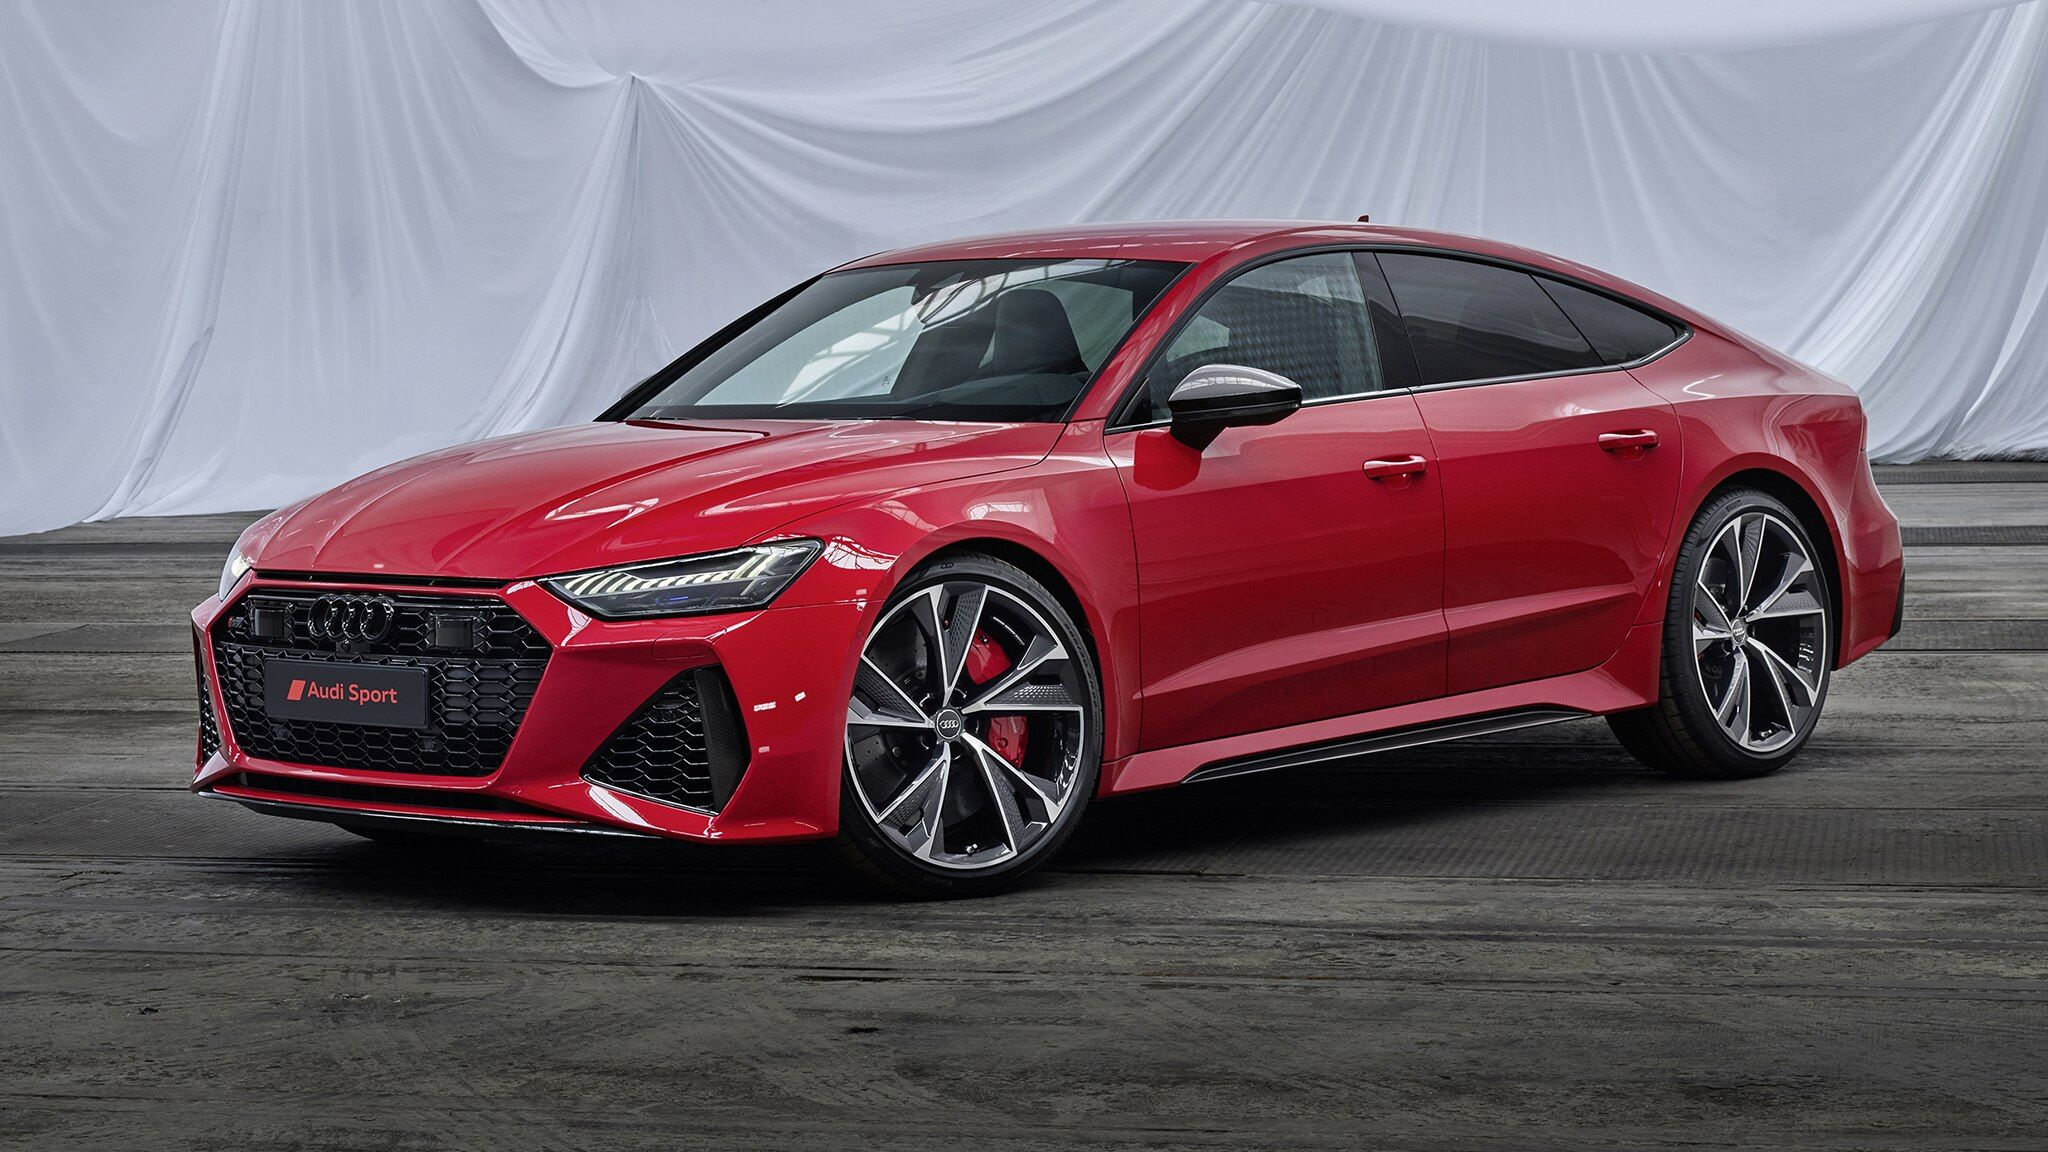 The 2020 Audi Rs7 Sportback Is A 591 Hp Monster Automobile Magazine Audi Rs7 Sportback Porsche Panamera Turbo Audi Sport